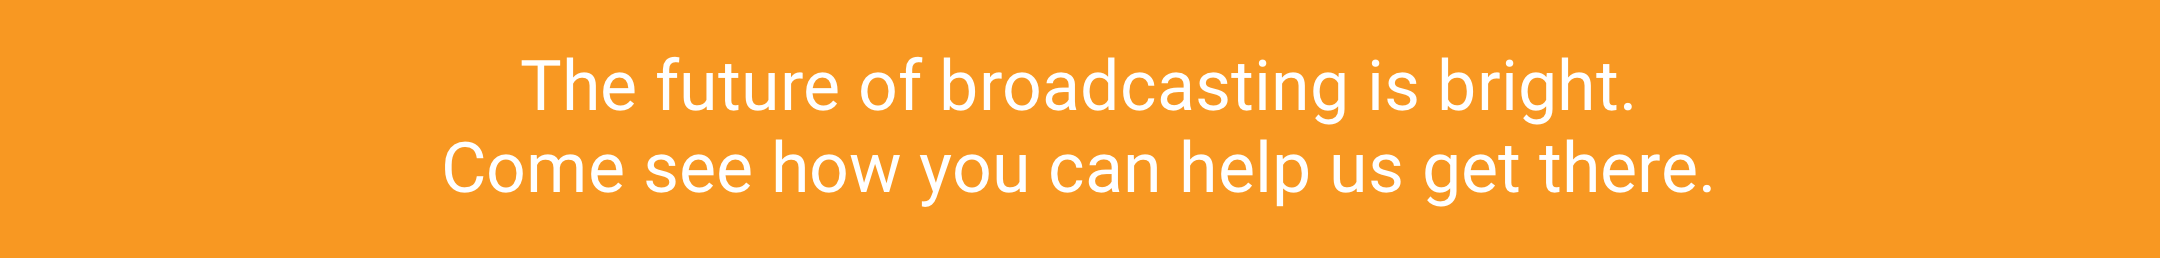 The future of broadcasting is bright. Come see how you can help us get there.